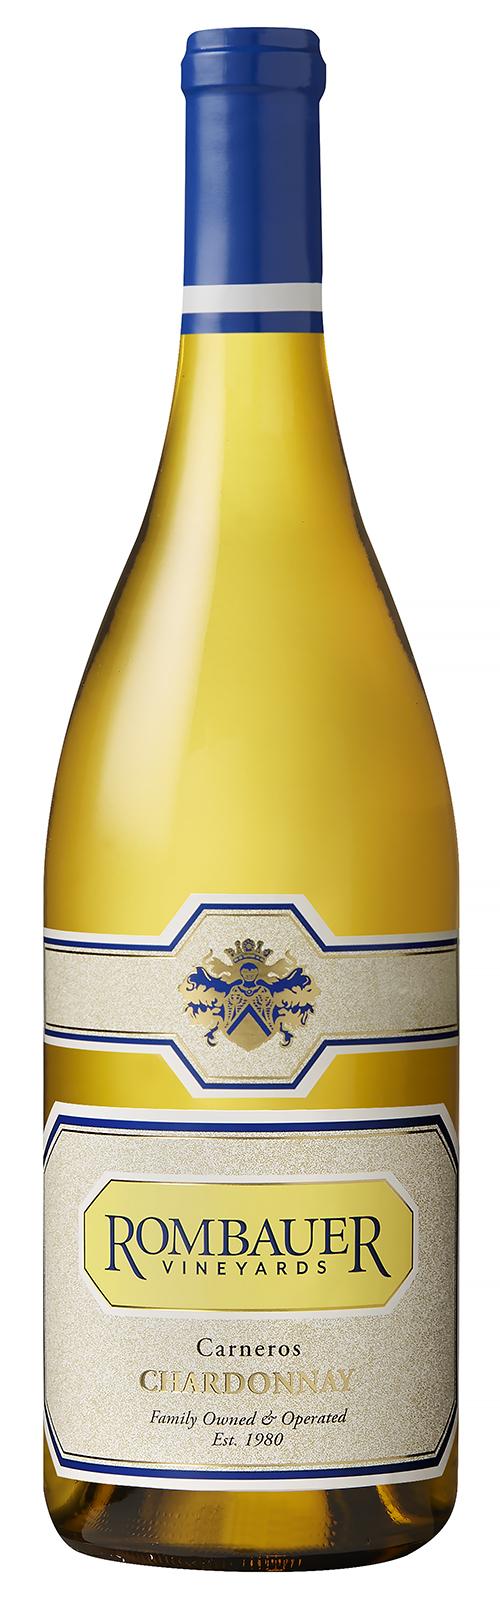 Rombauer Chardonnay Carneros (375 ml) 2015, 375ml () from The BPW - Merchants of rare and fine wines.